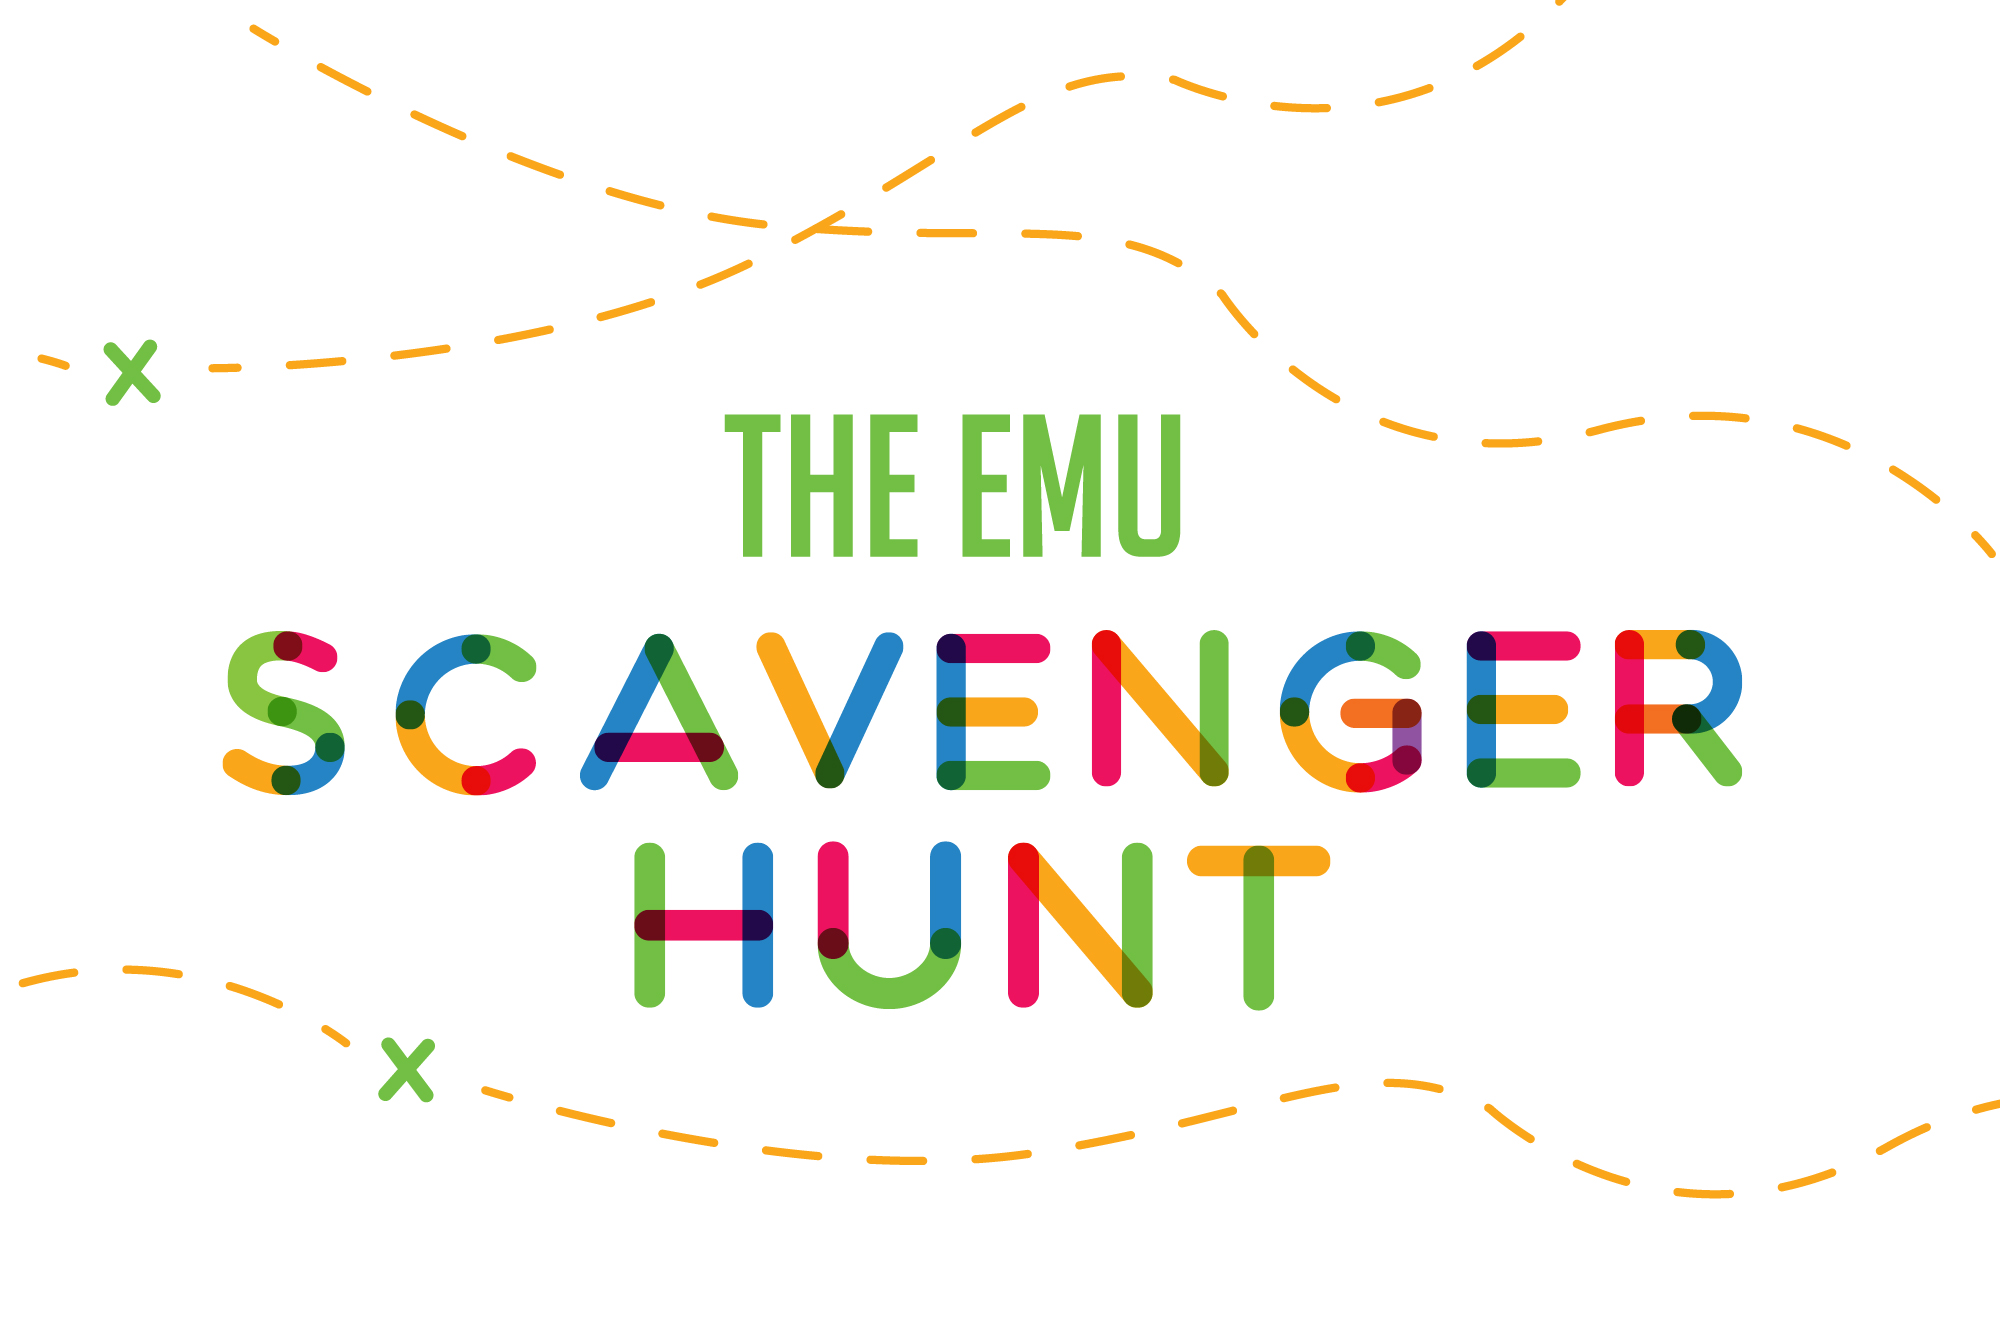 The EMU Scavenger Hunt